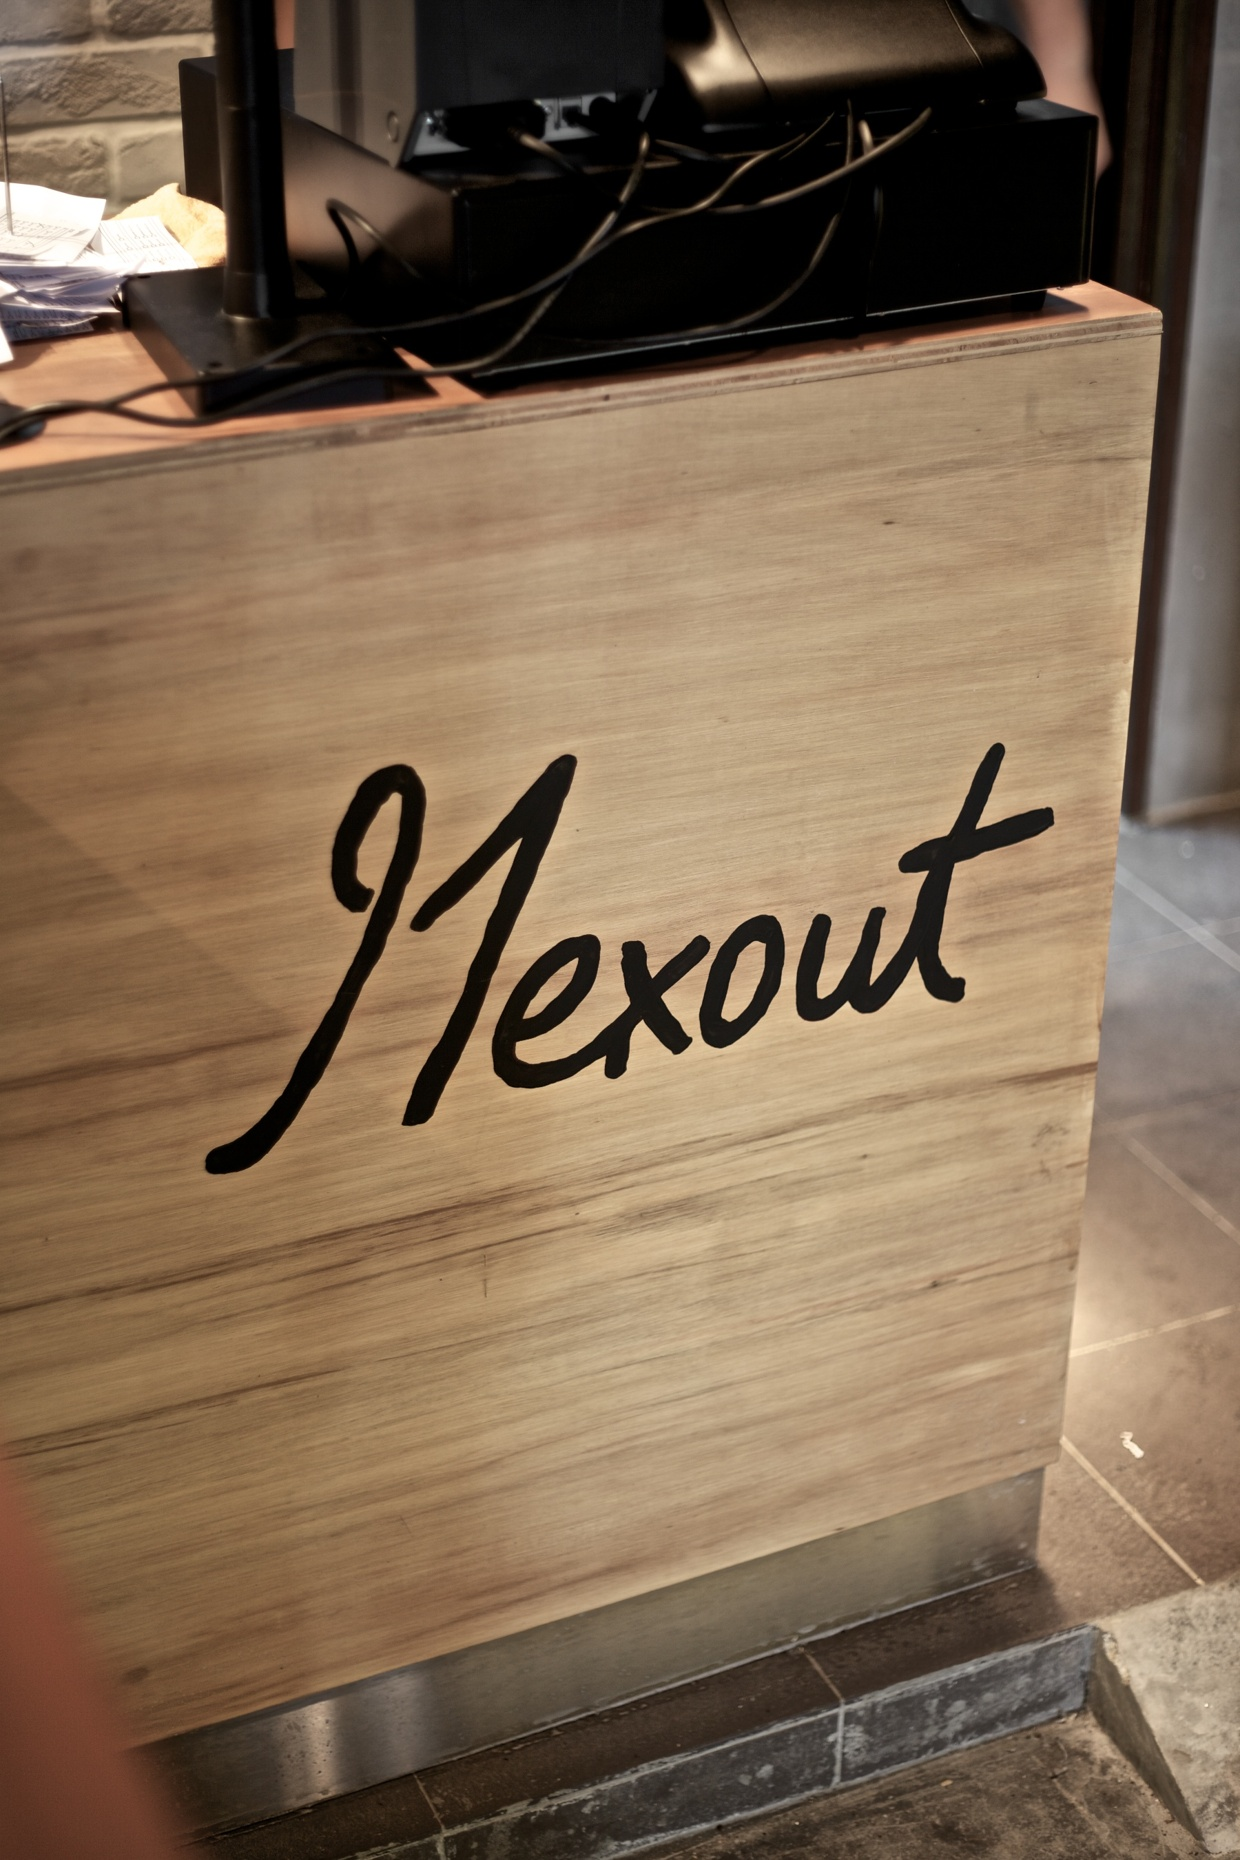 Mexout Singapore